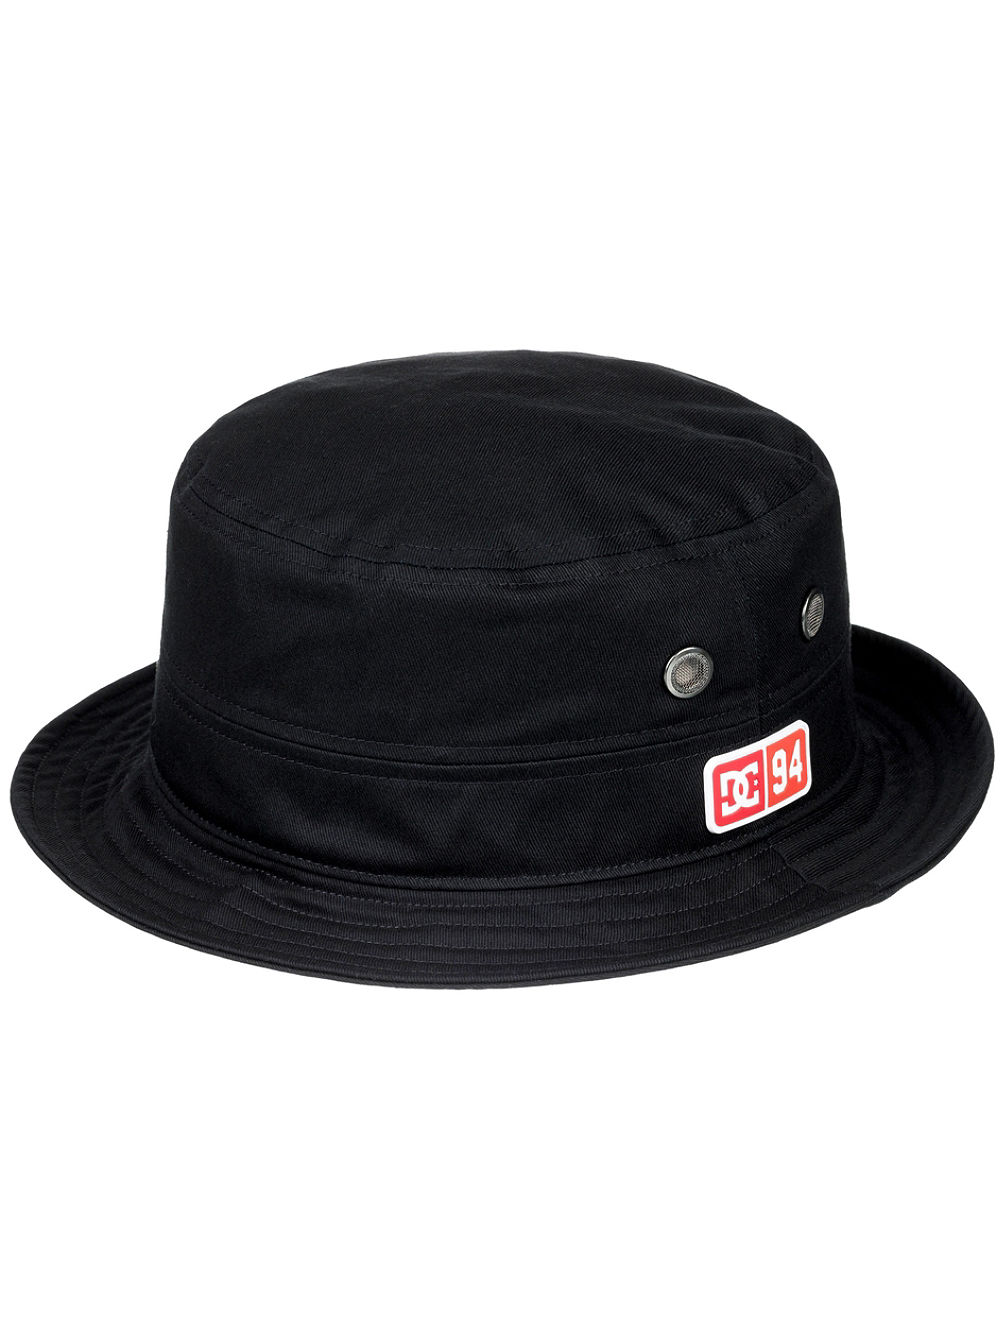 Buy DC Story Bucket Hat online at blue-tomato.com dfc157efab2